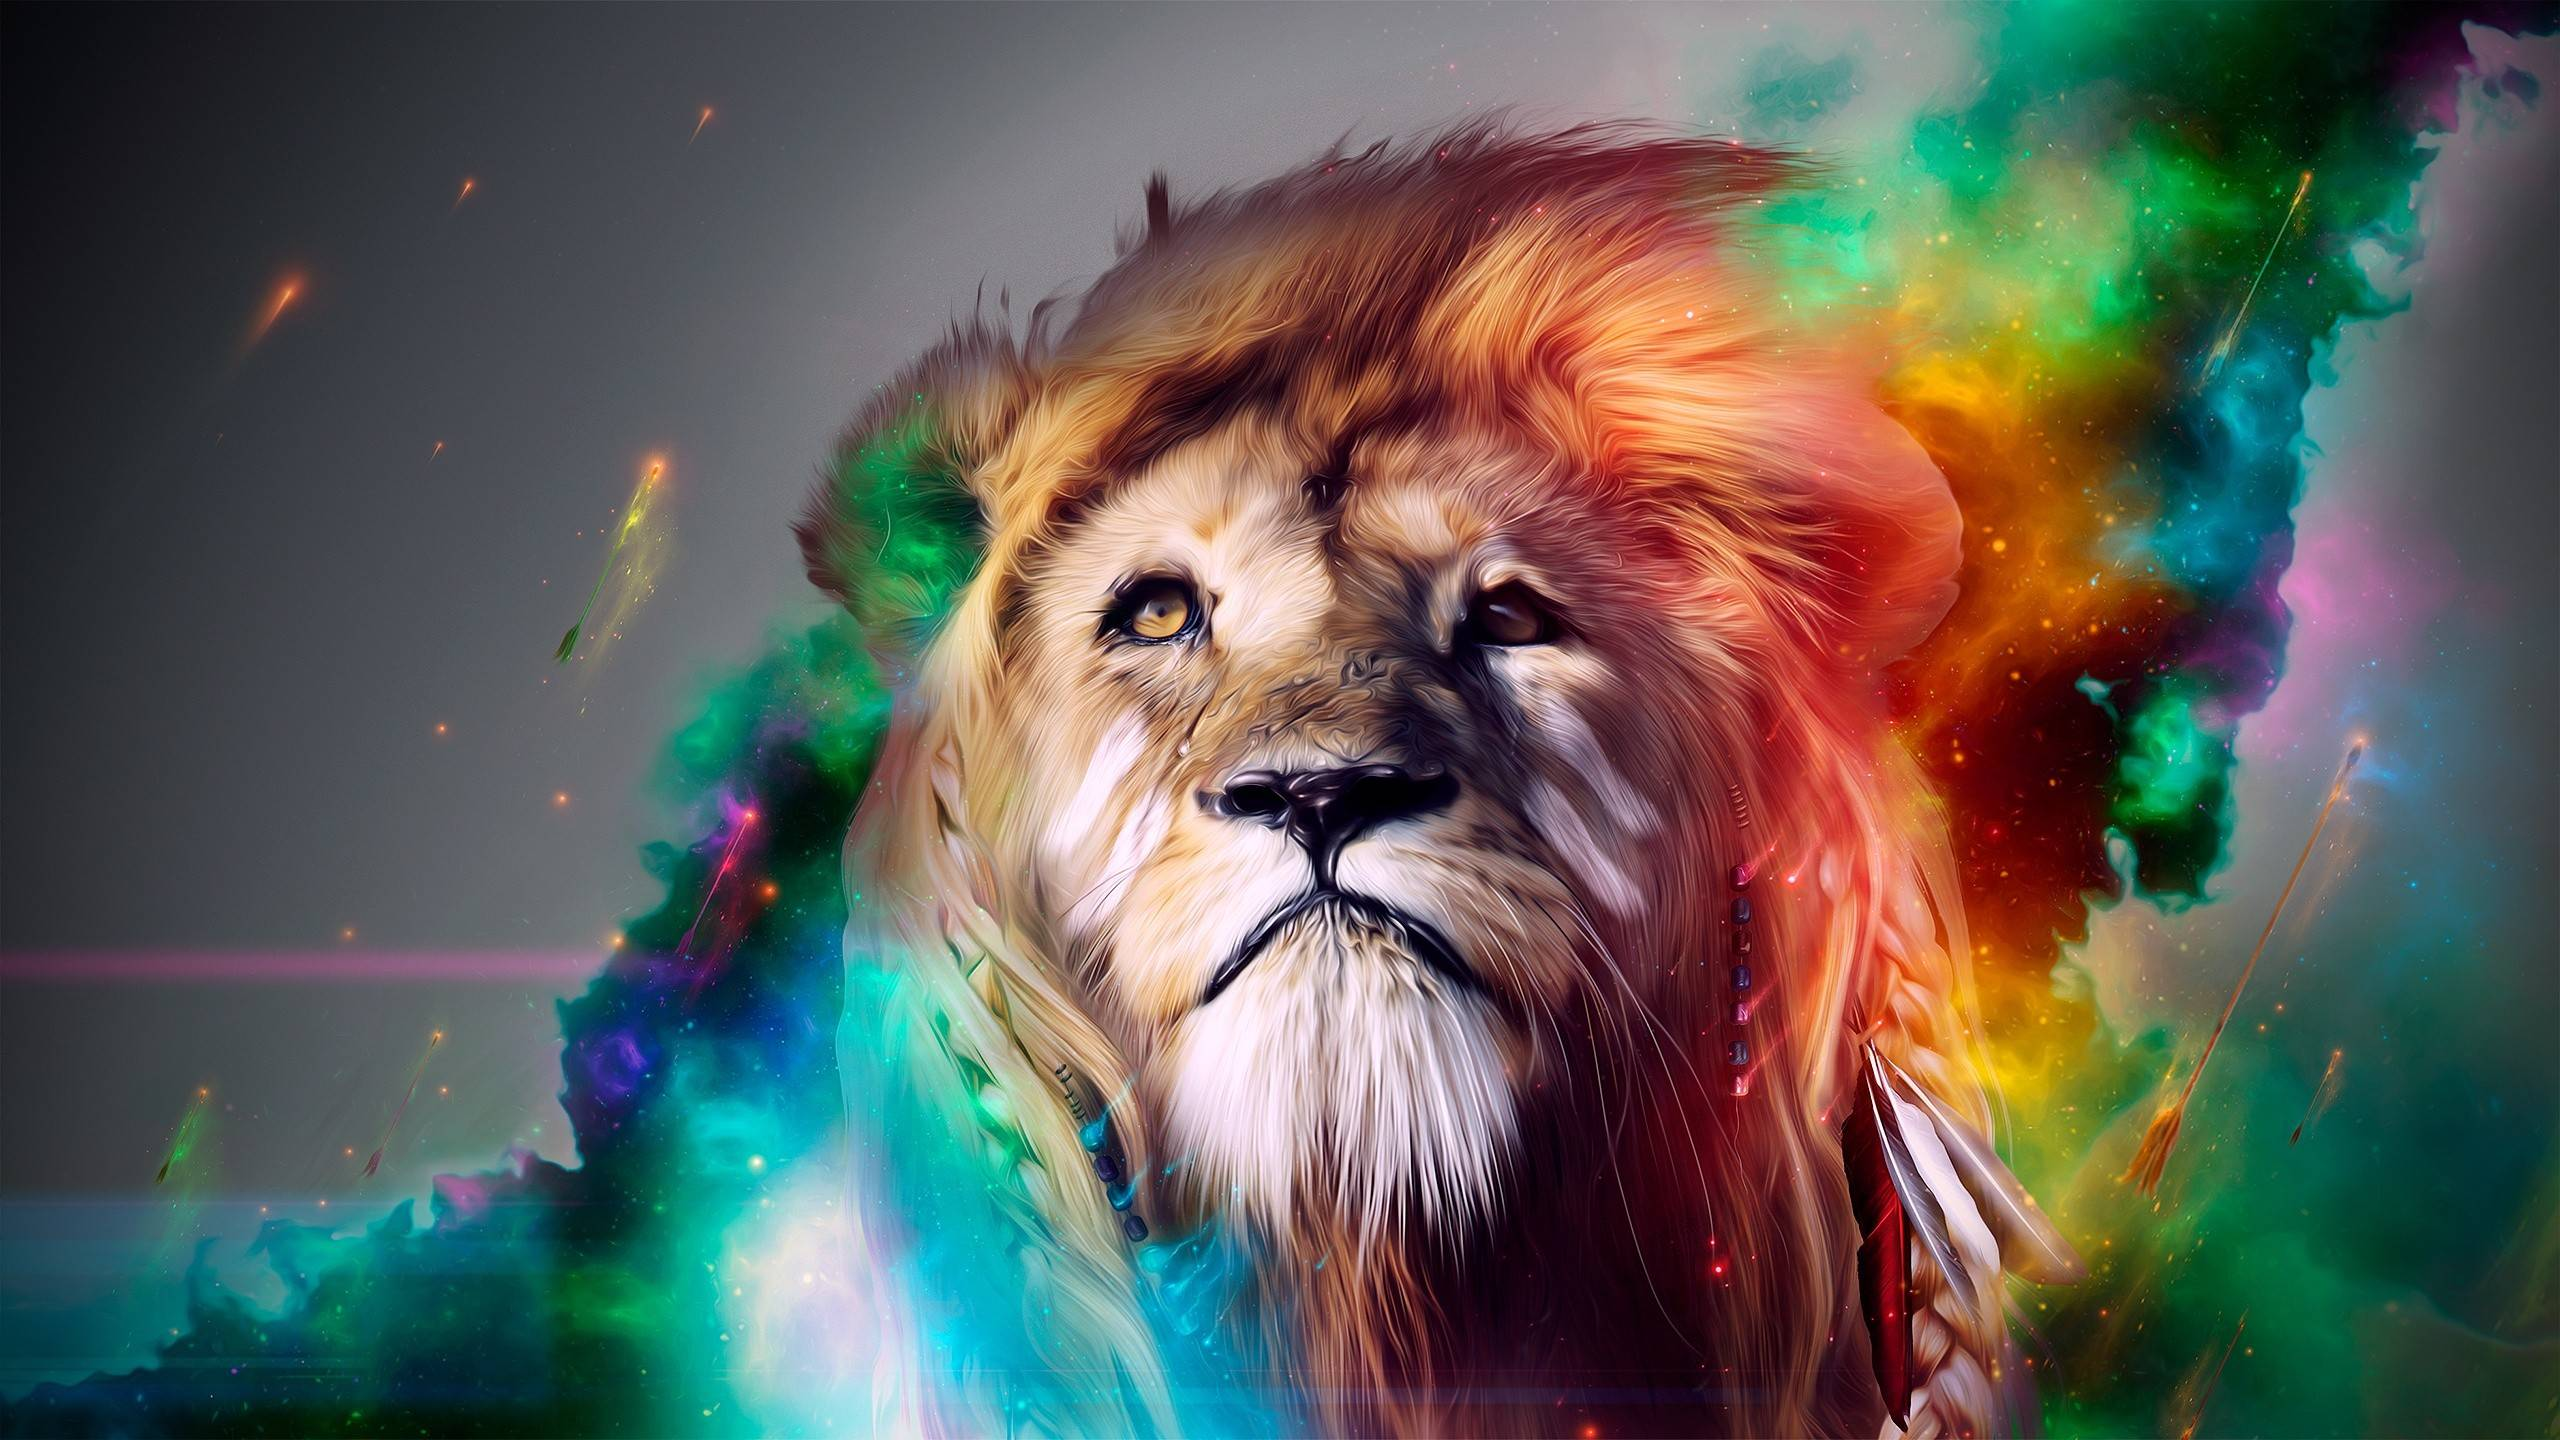 Best and Coolest Collection HD Wallpapers Ever 41 Best and Coolest 2560x1440